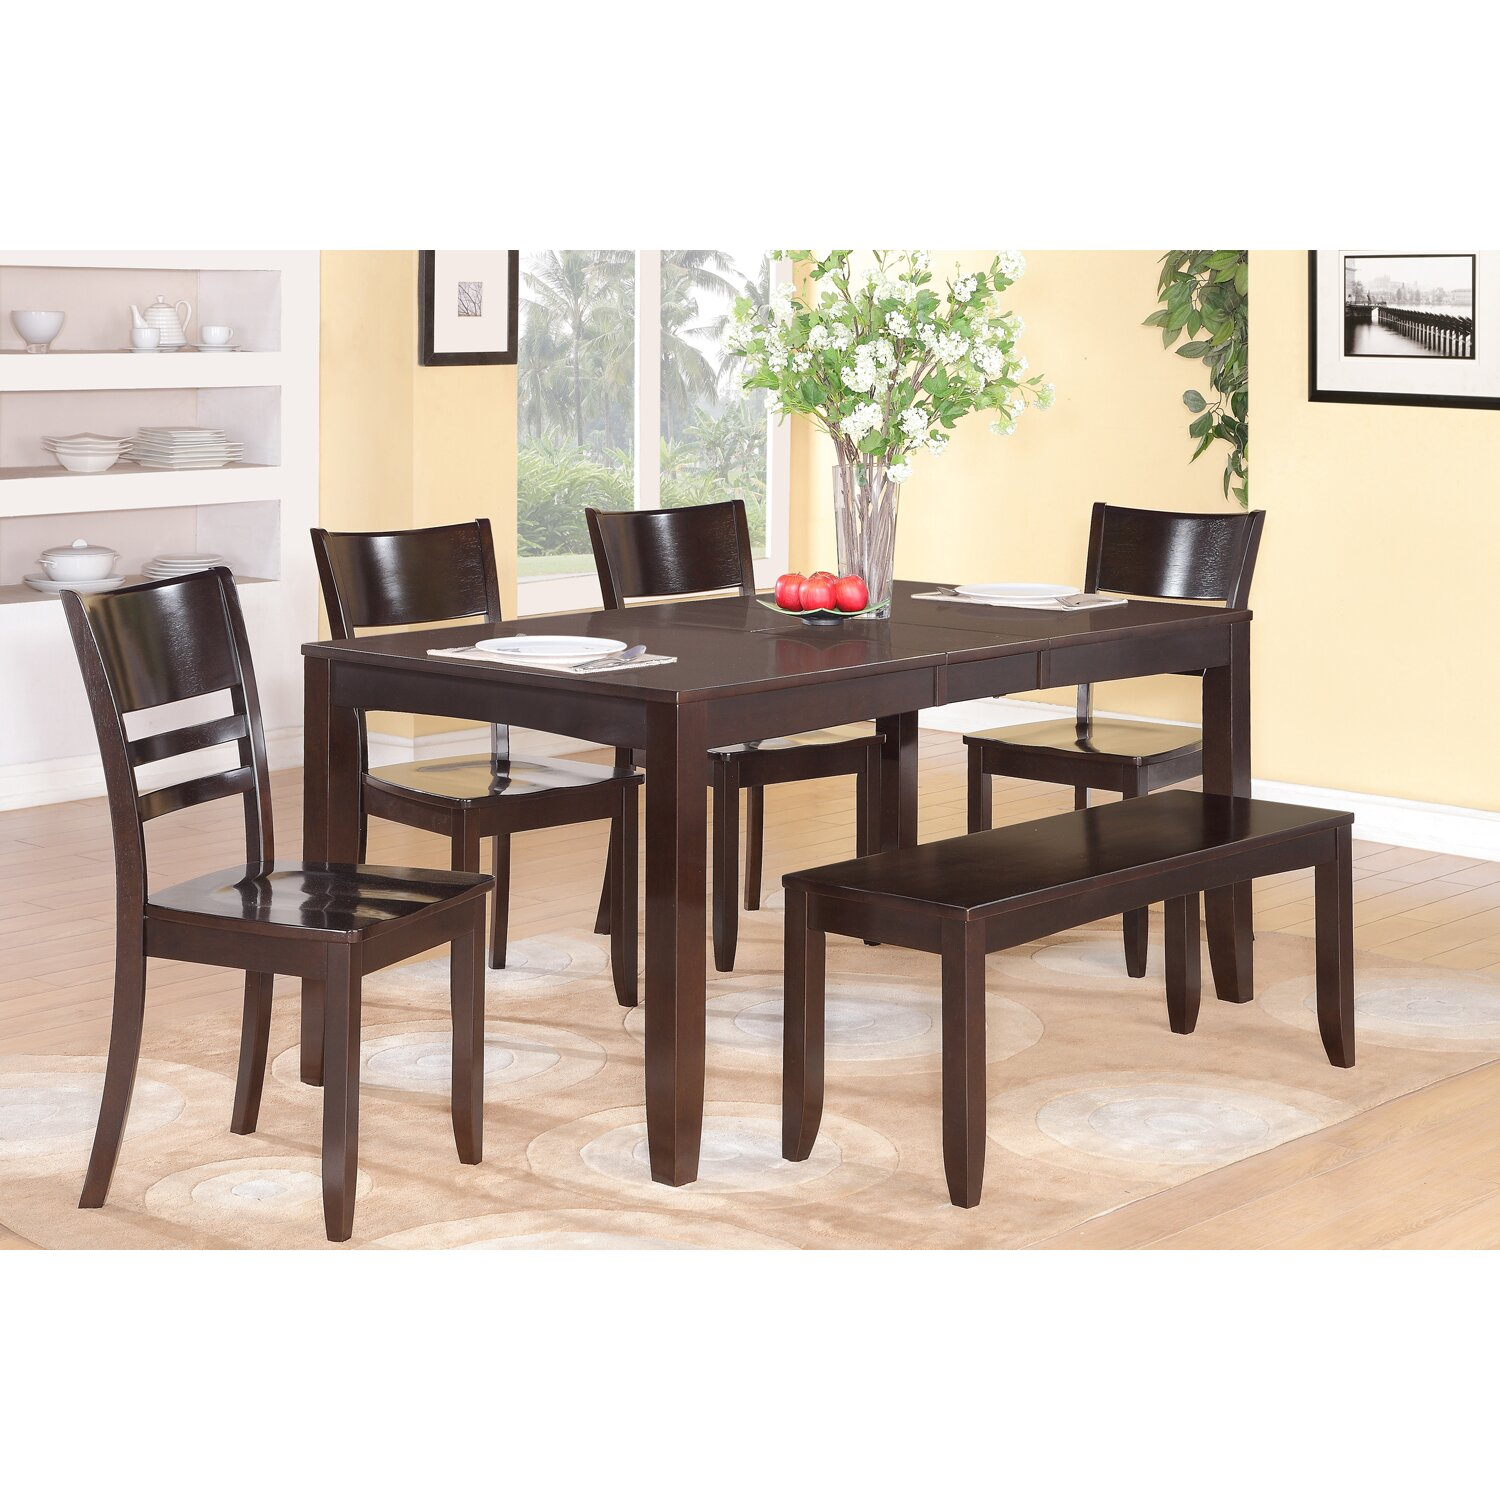 Wooden Importers Lynfield 6 Piece Dining Set & Reviews